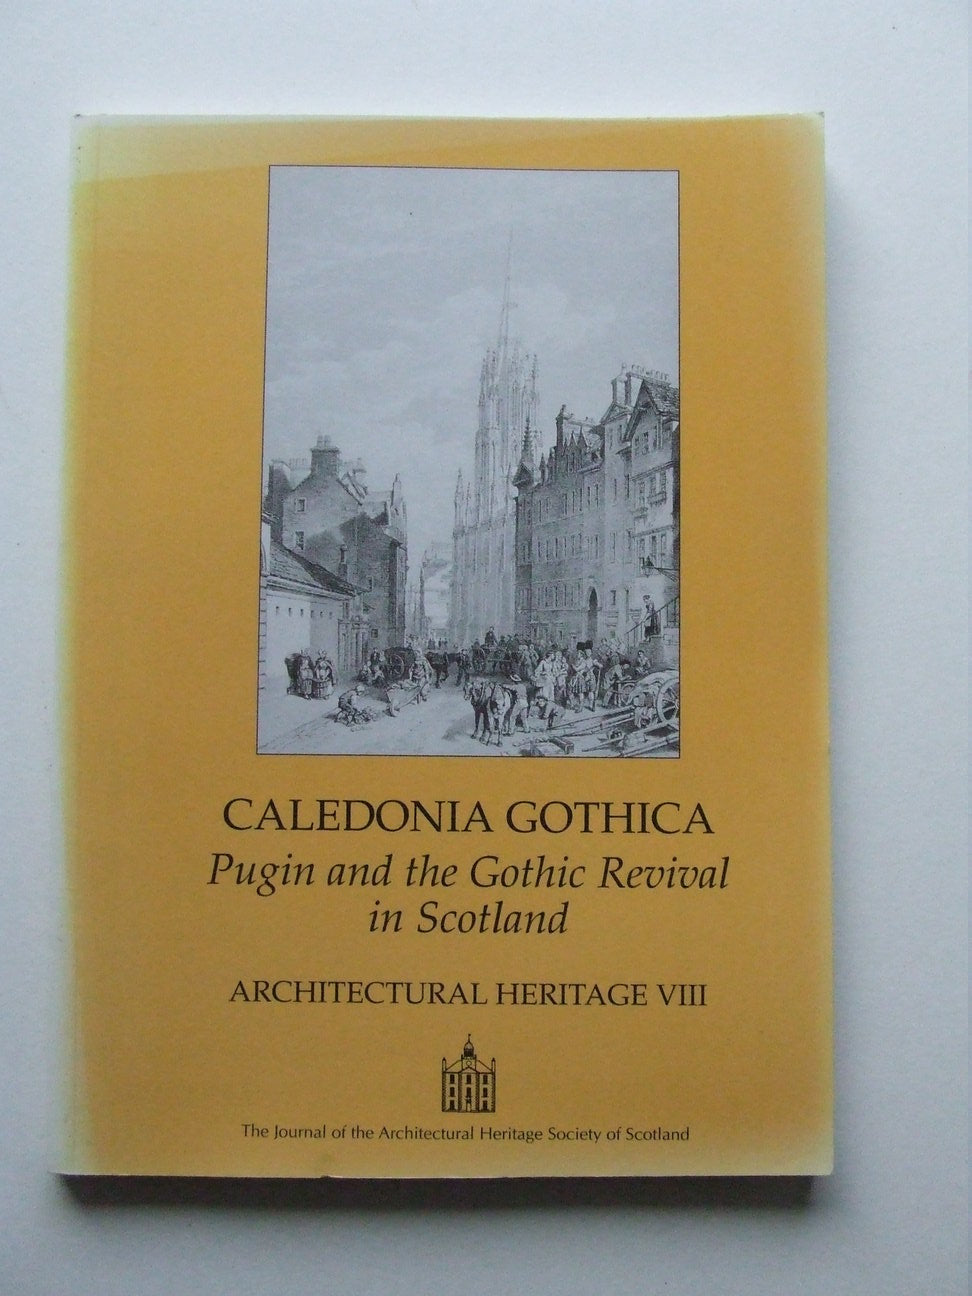 Caledonia Gothica, Pugin and the Gothic revival in Scotland